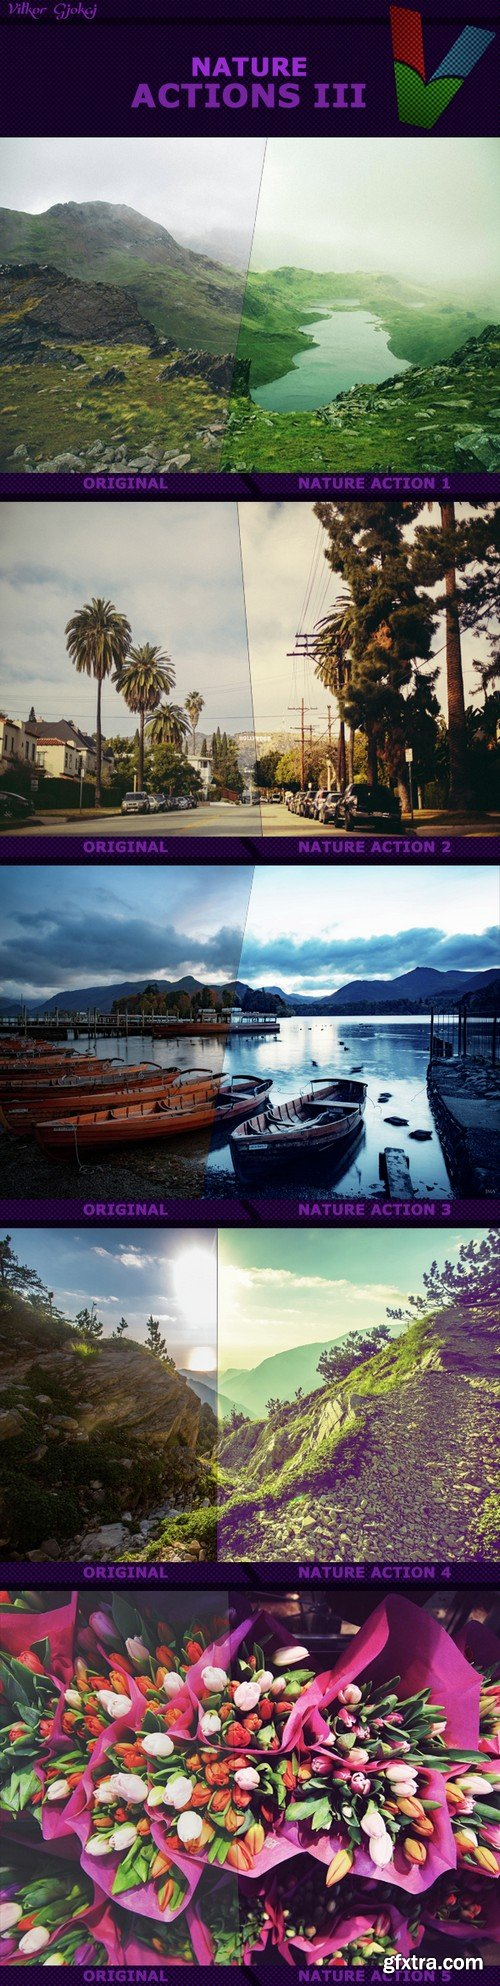 Graphicriver - Nature Actions III 15222022